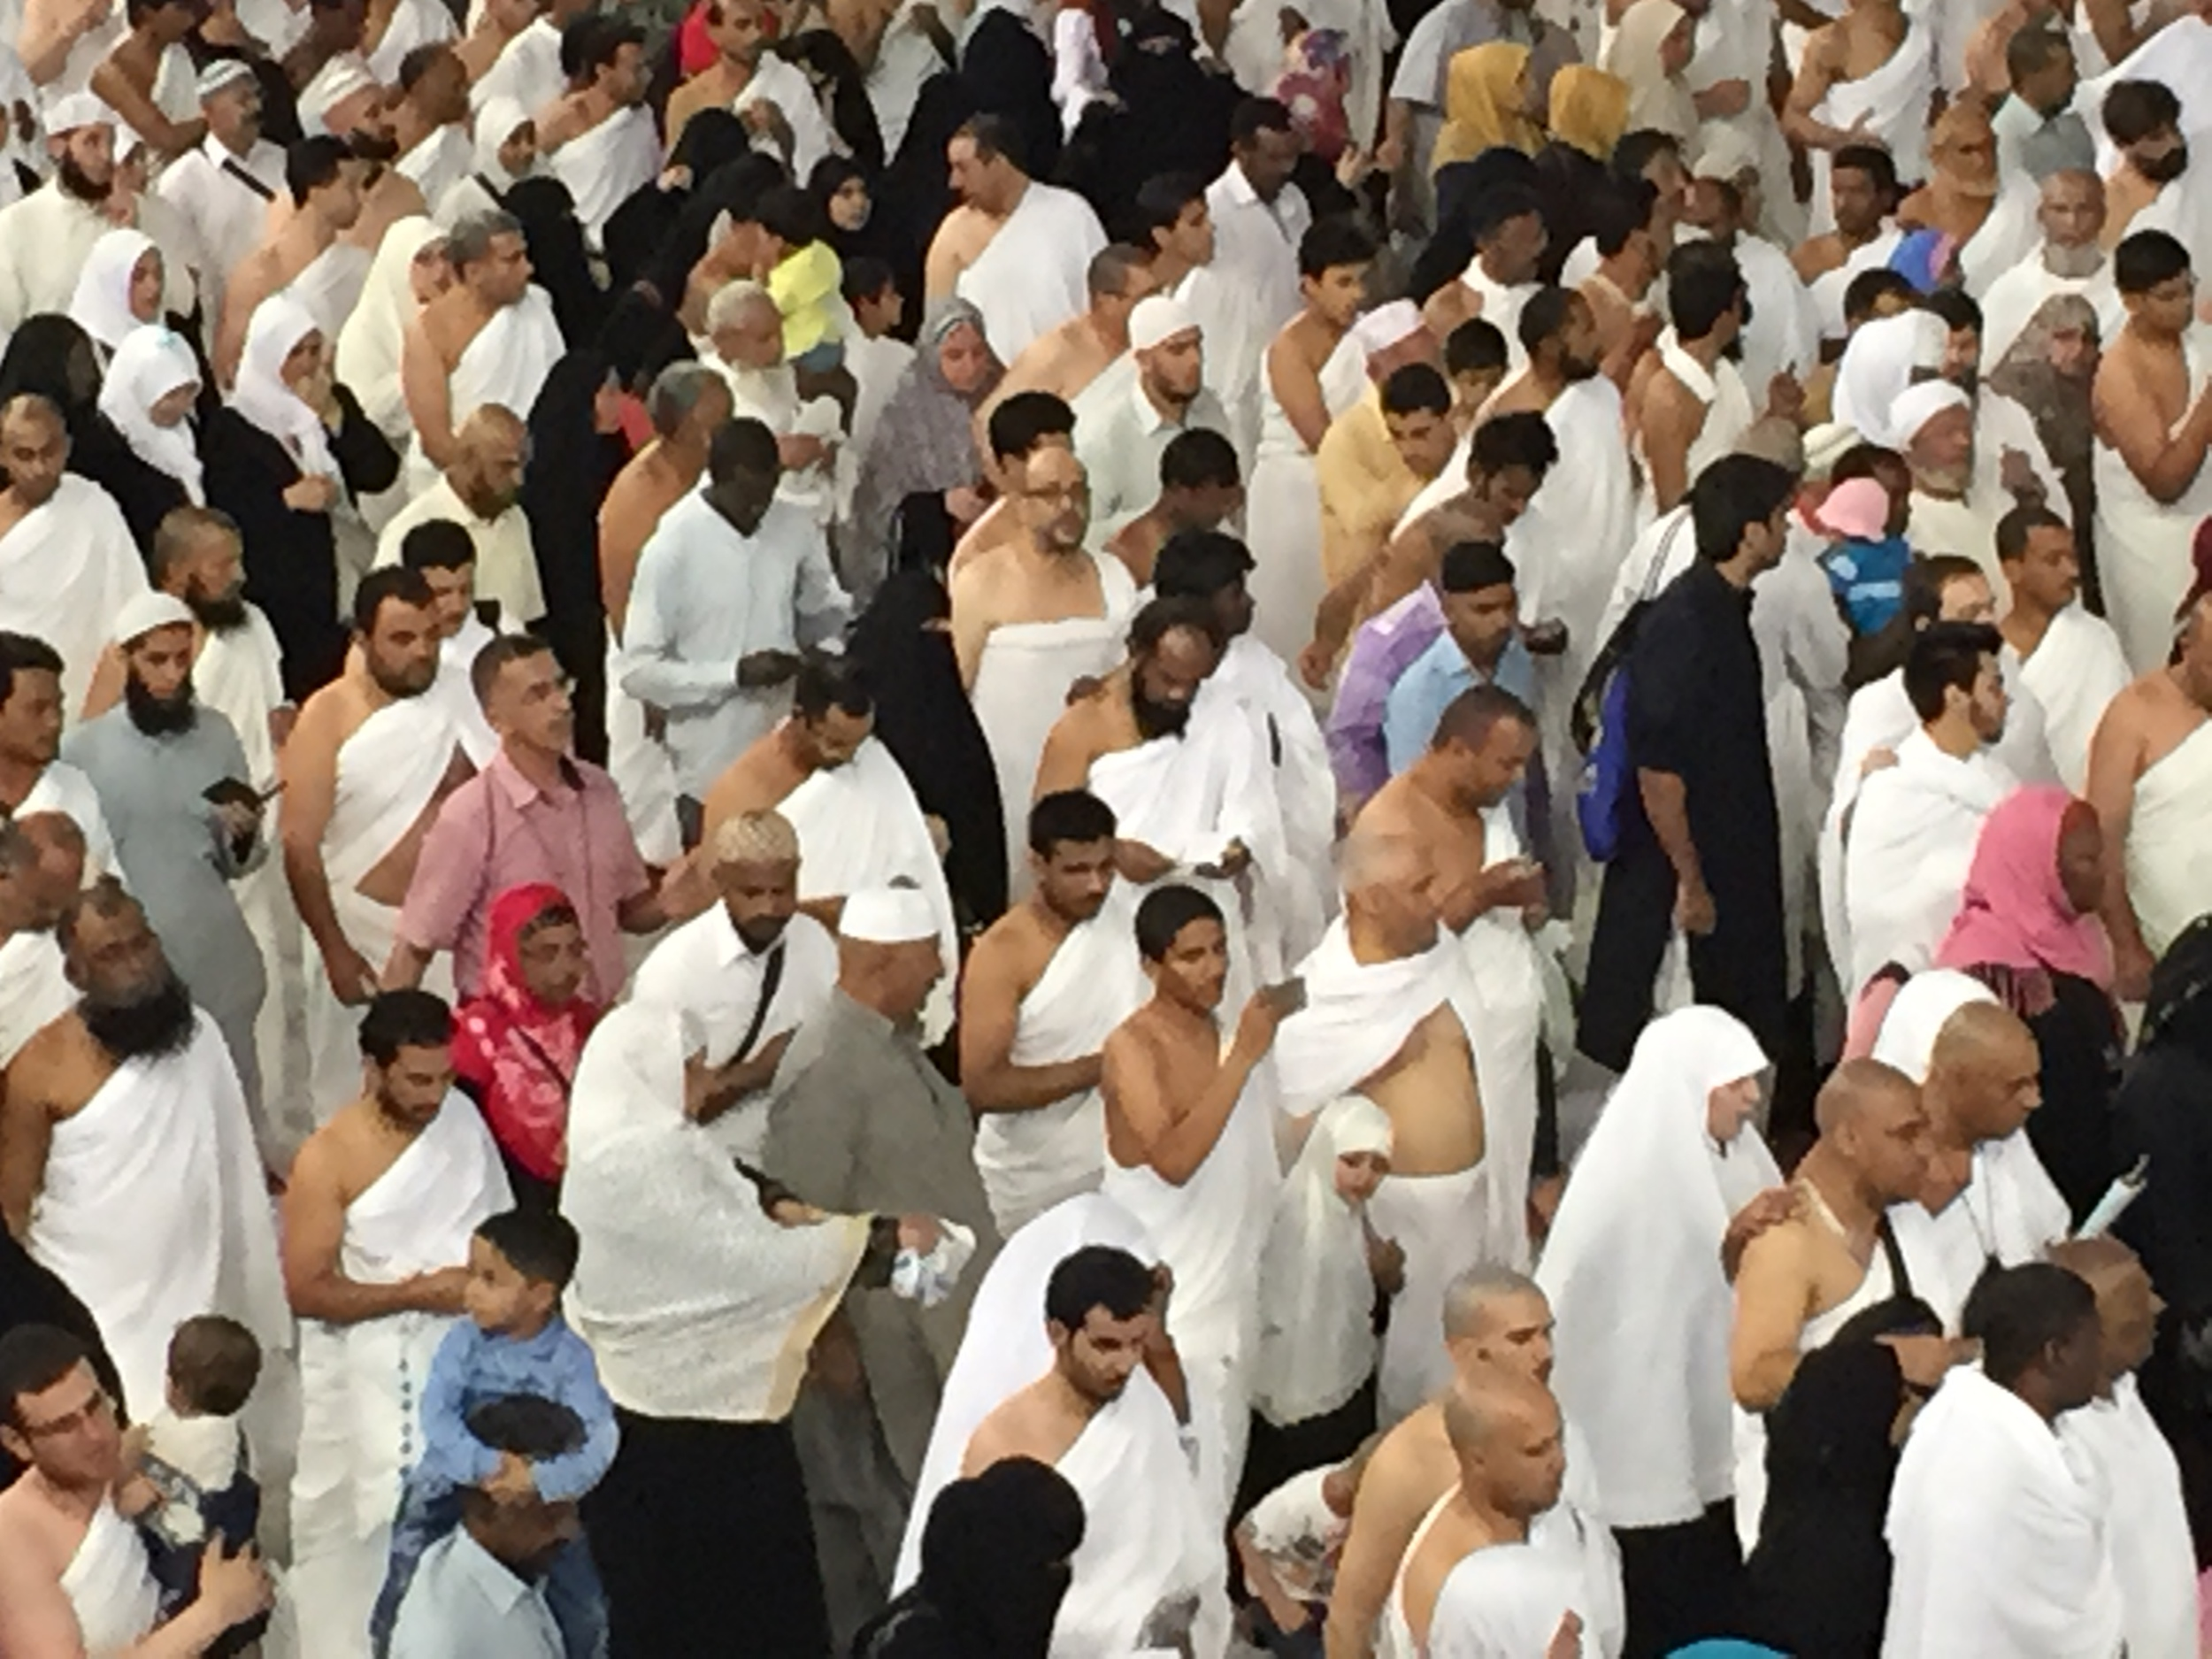 Different faces of Tawaf